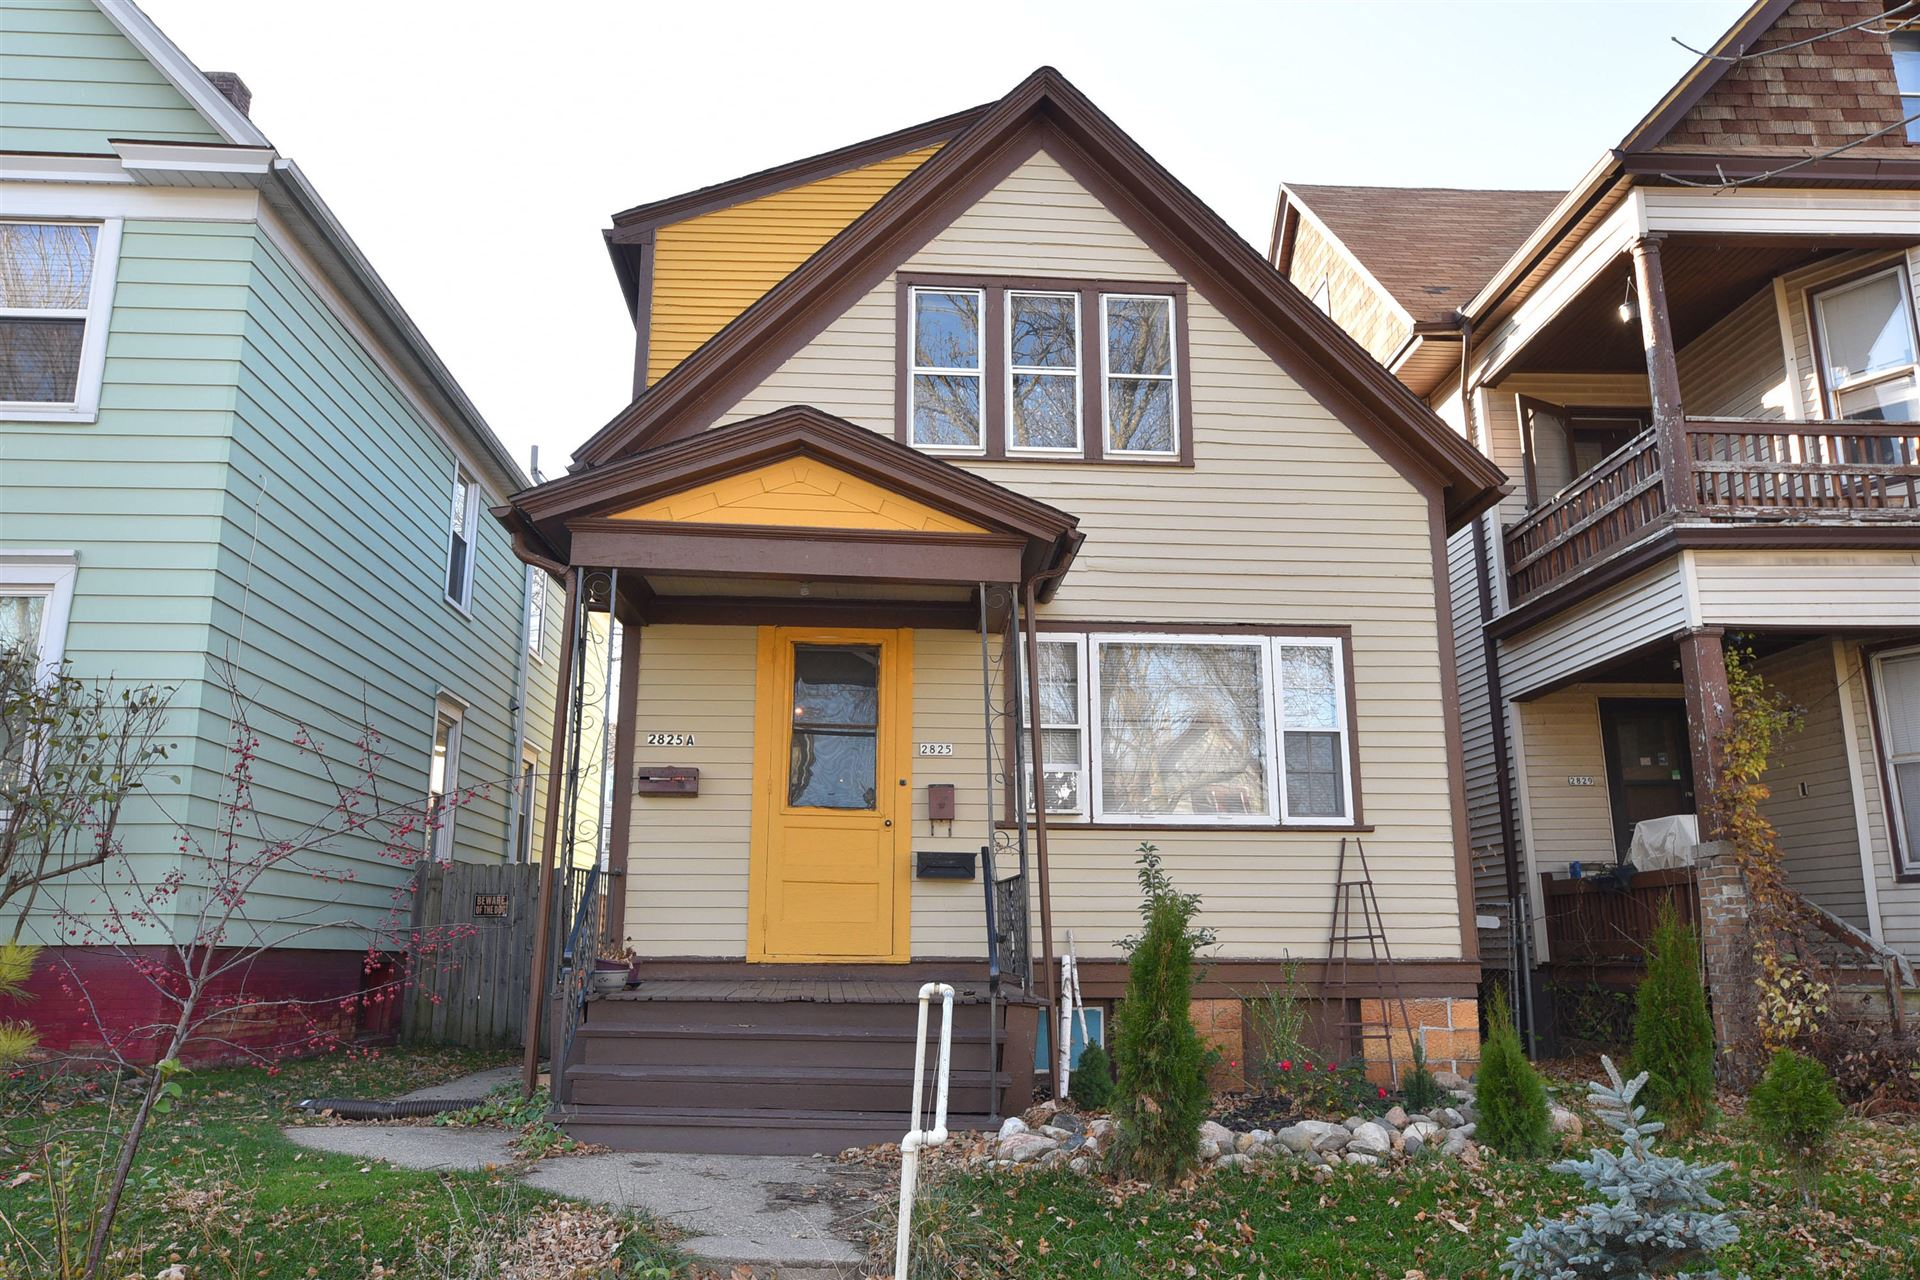 2825 N Booth St, Milwaukee, WI 53212 - #: 1718765